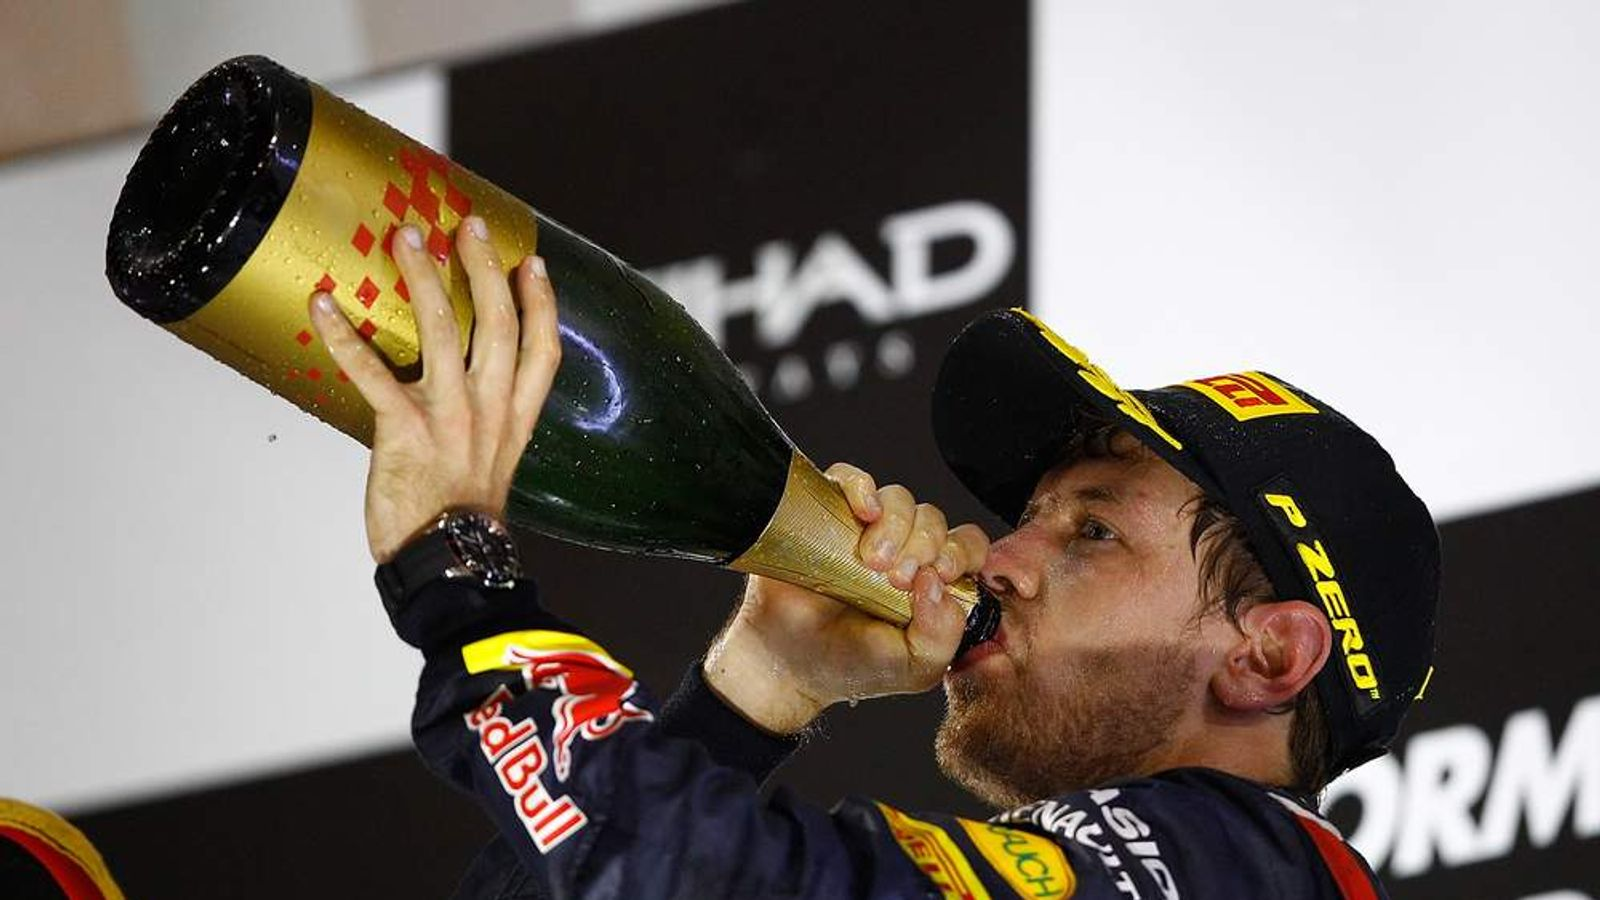 Sebastian Vettel finishes third in Abu Dhabi